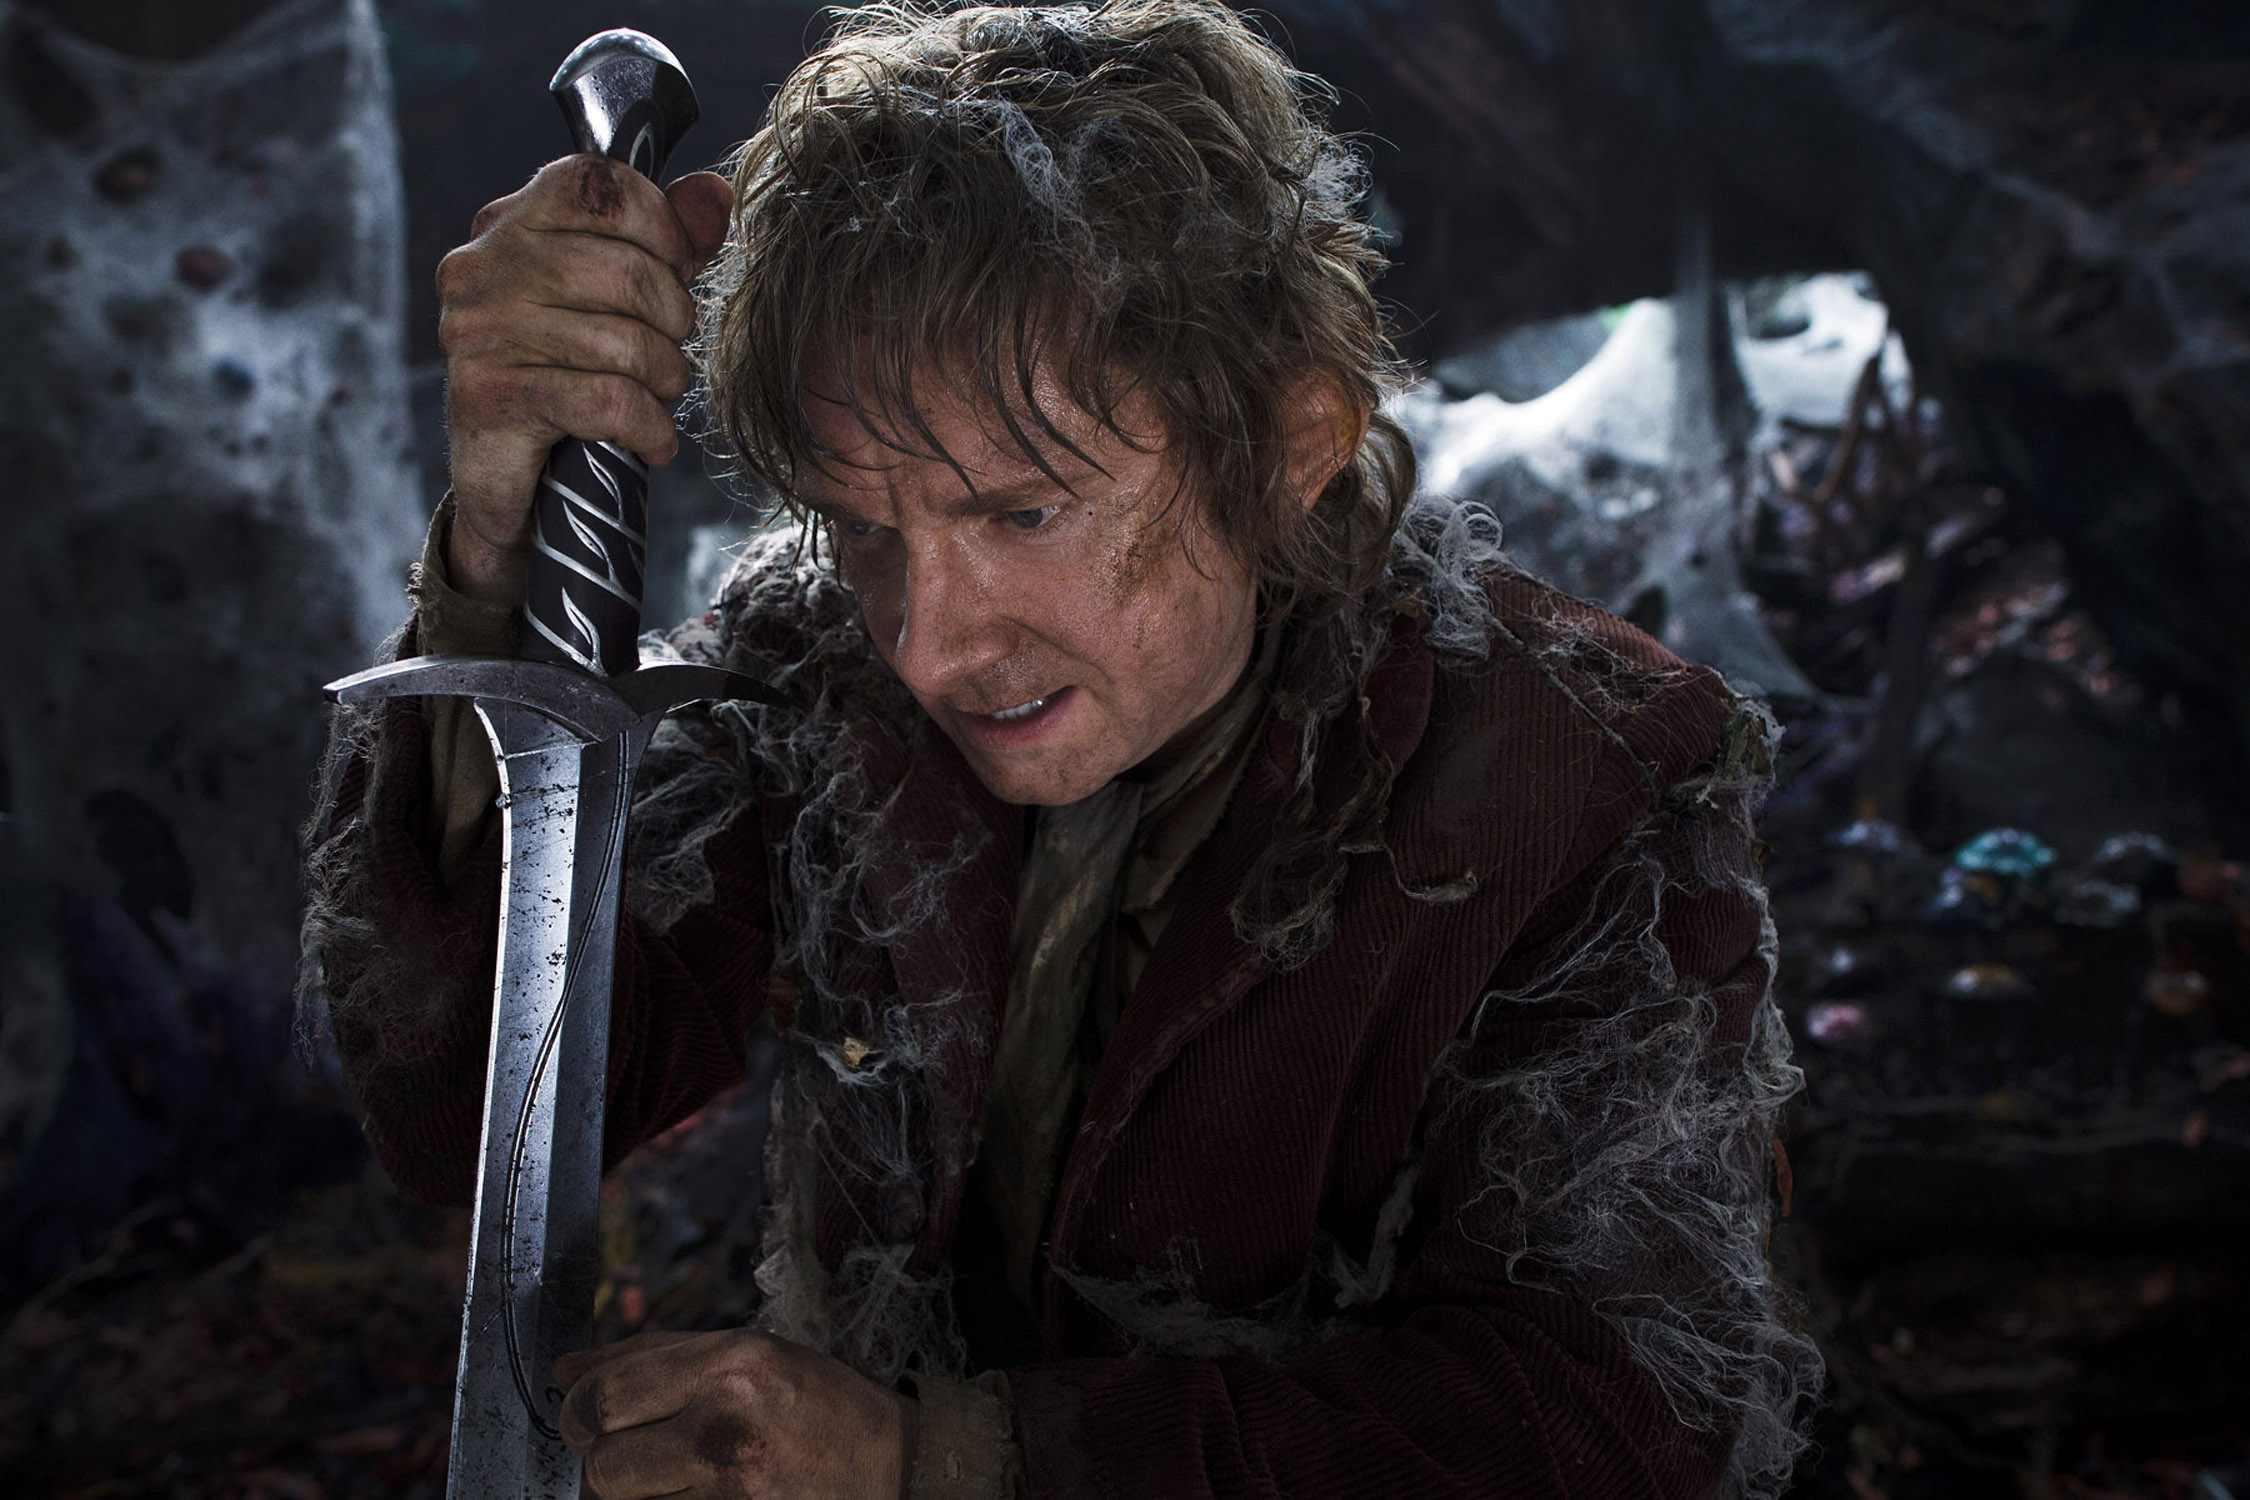 MARTIN FREEMAN as Bilbo Baggins in New Line Cinema's movie a THE HOBBIT: AN UNEXPECTED JOURNEY